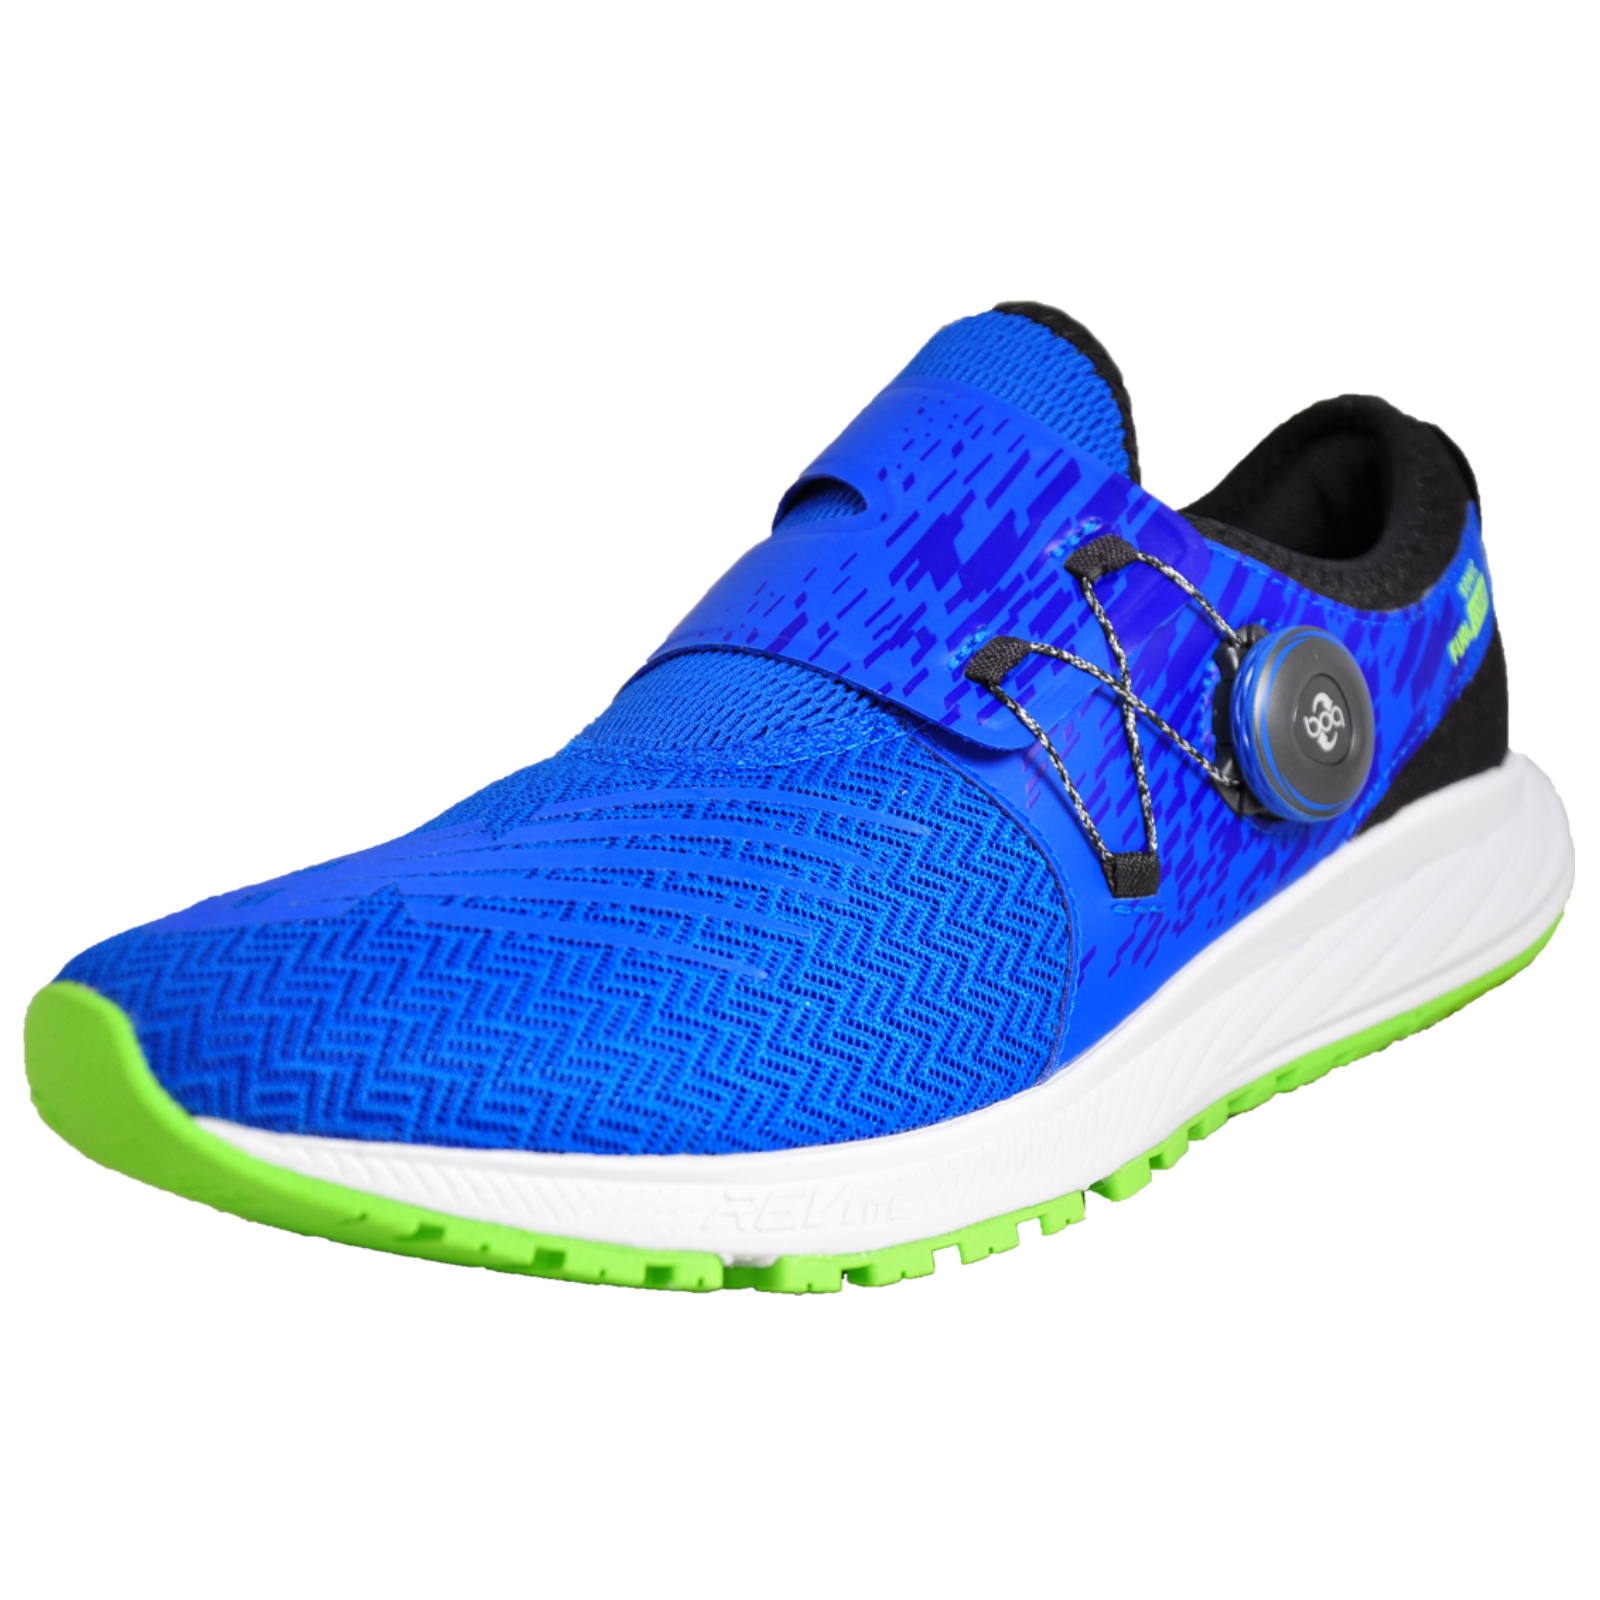 buy cheap 09123 6e1d0 Details about New Balance FuelCore Sonic v1 Men's Premium Running Shoes  Fitness Trainers Blue